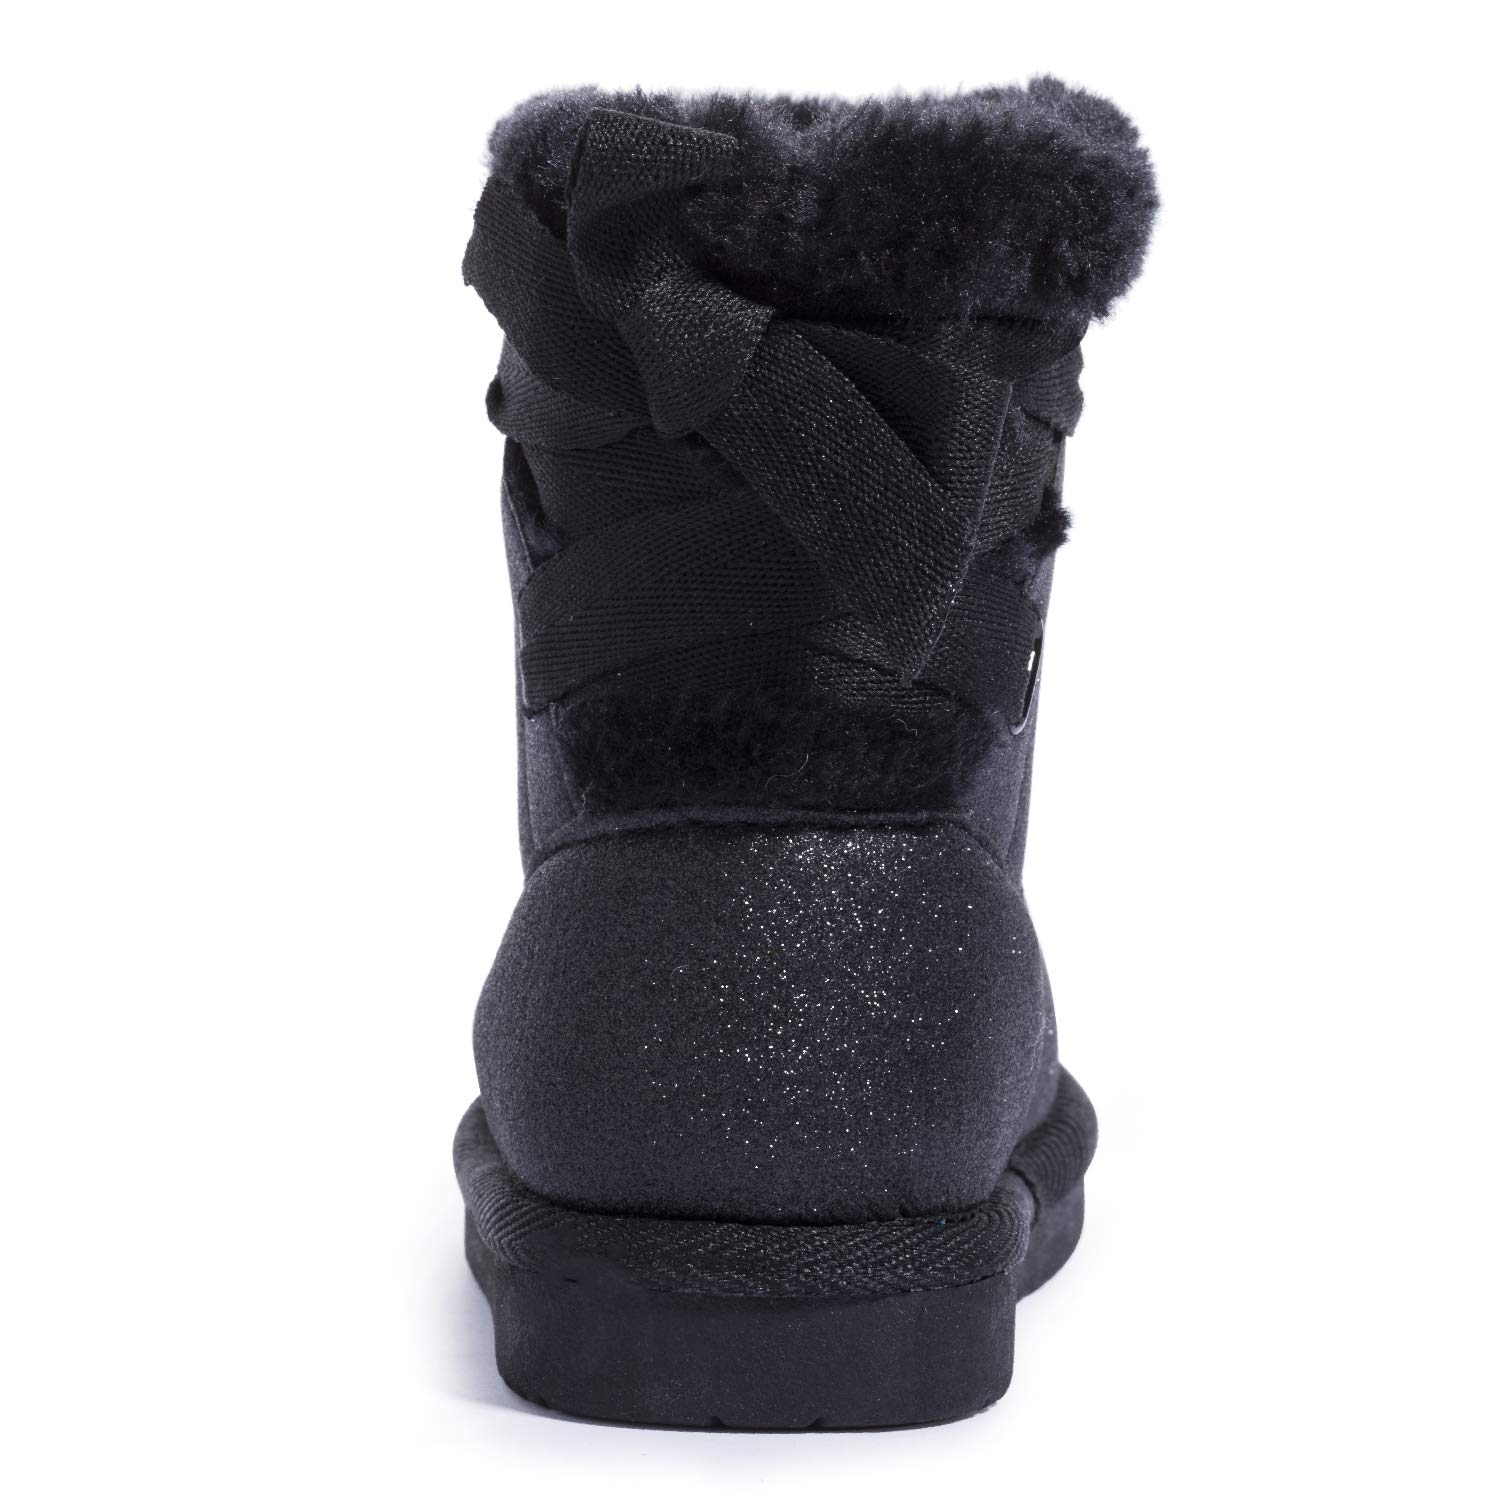 KRABOR Toddler Girls Glitter Winter Boots Warm Fur Lining Non-Slip Snow Shoes with Cute Bow Size 5-11